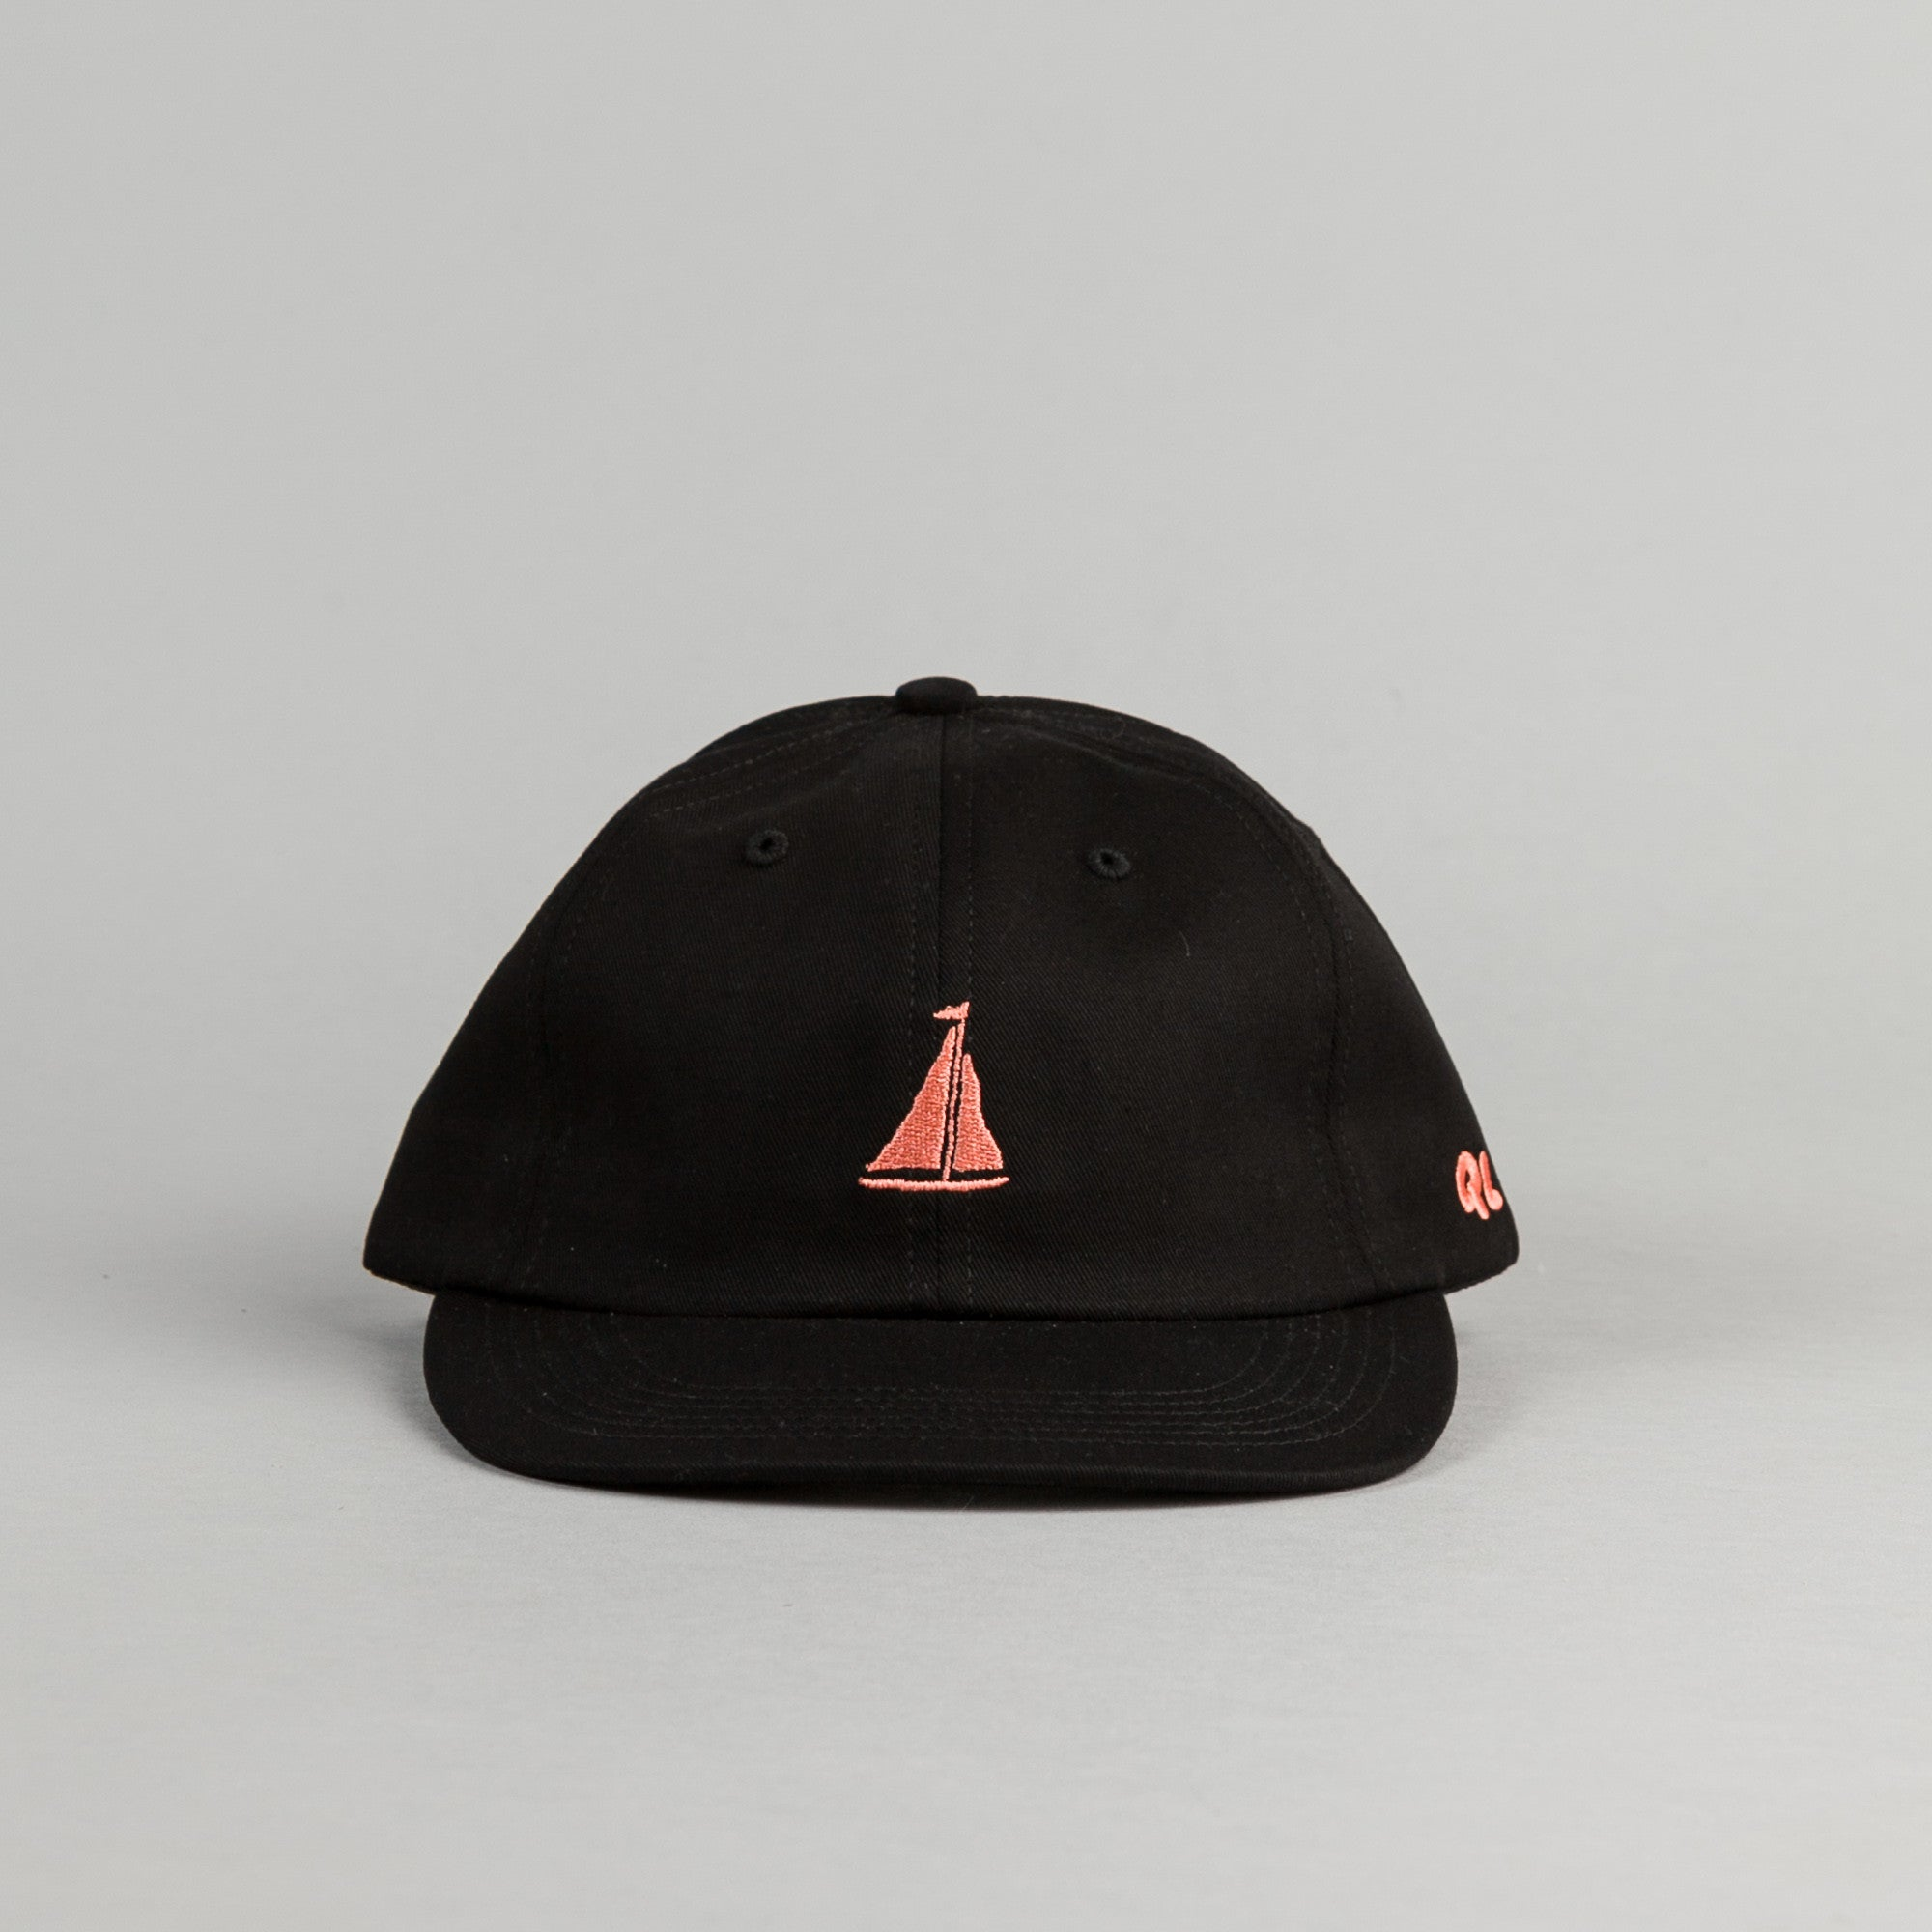 The Quiet Life Sail Polo Cap - Black